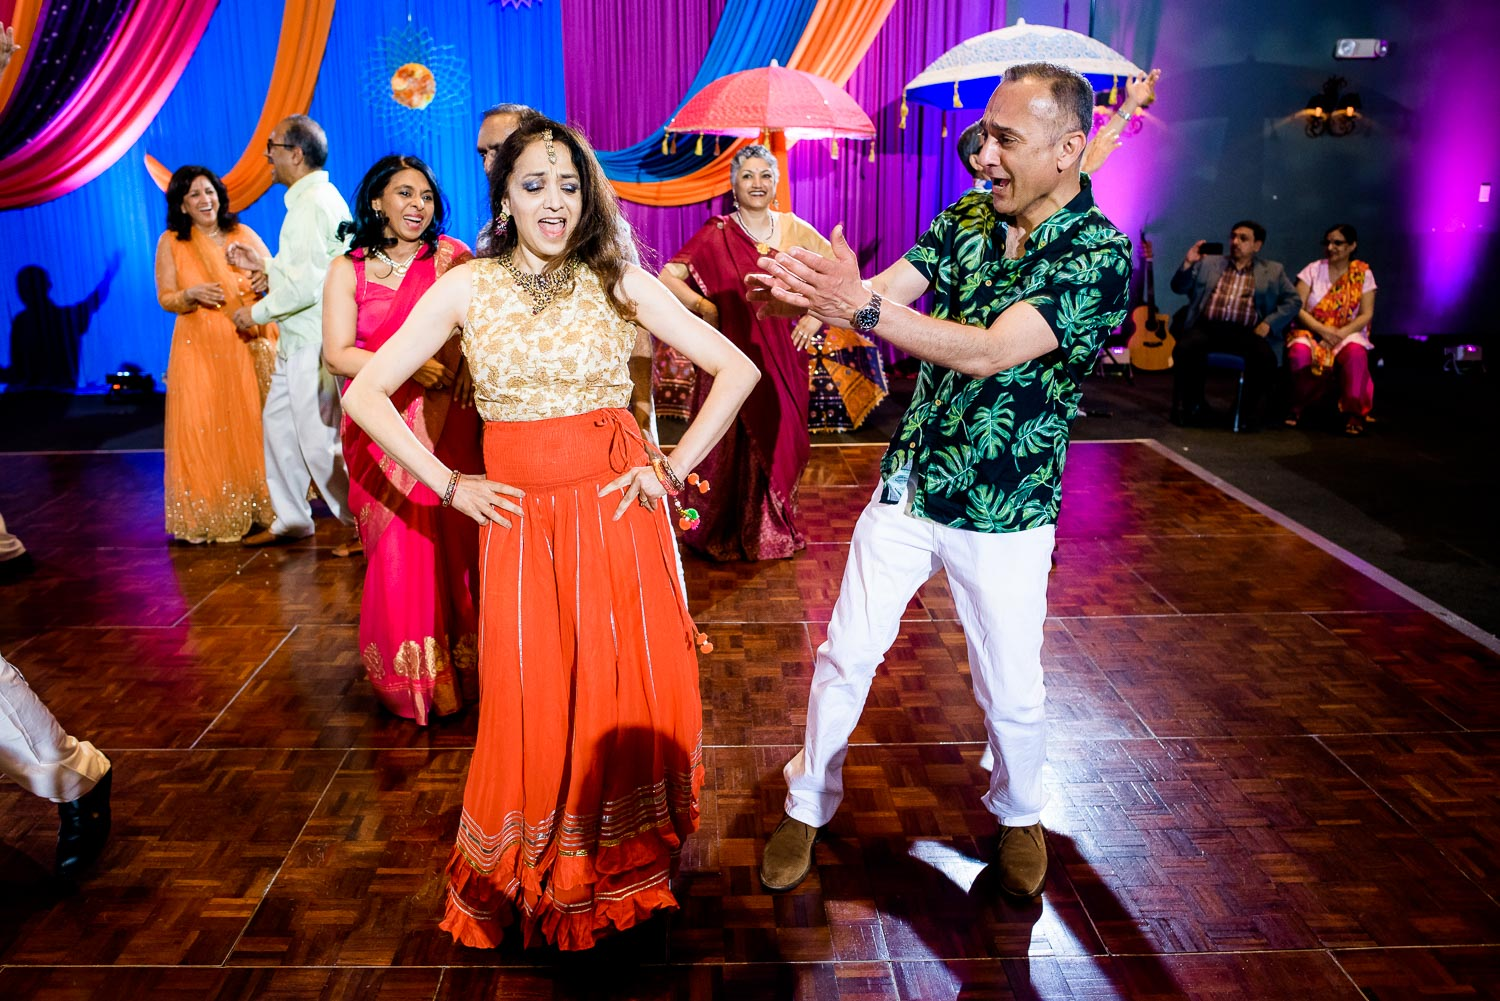 Aunts and uncles dance during an Indian wedding sangeet at Stonegate Banquets in Hoffman Estates.